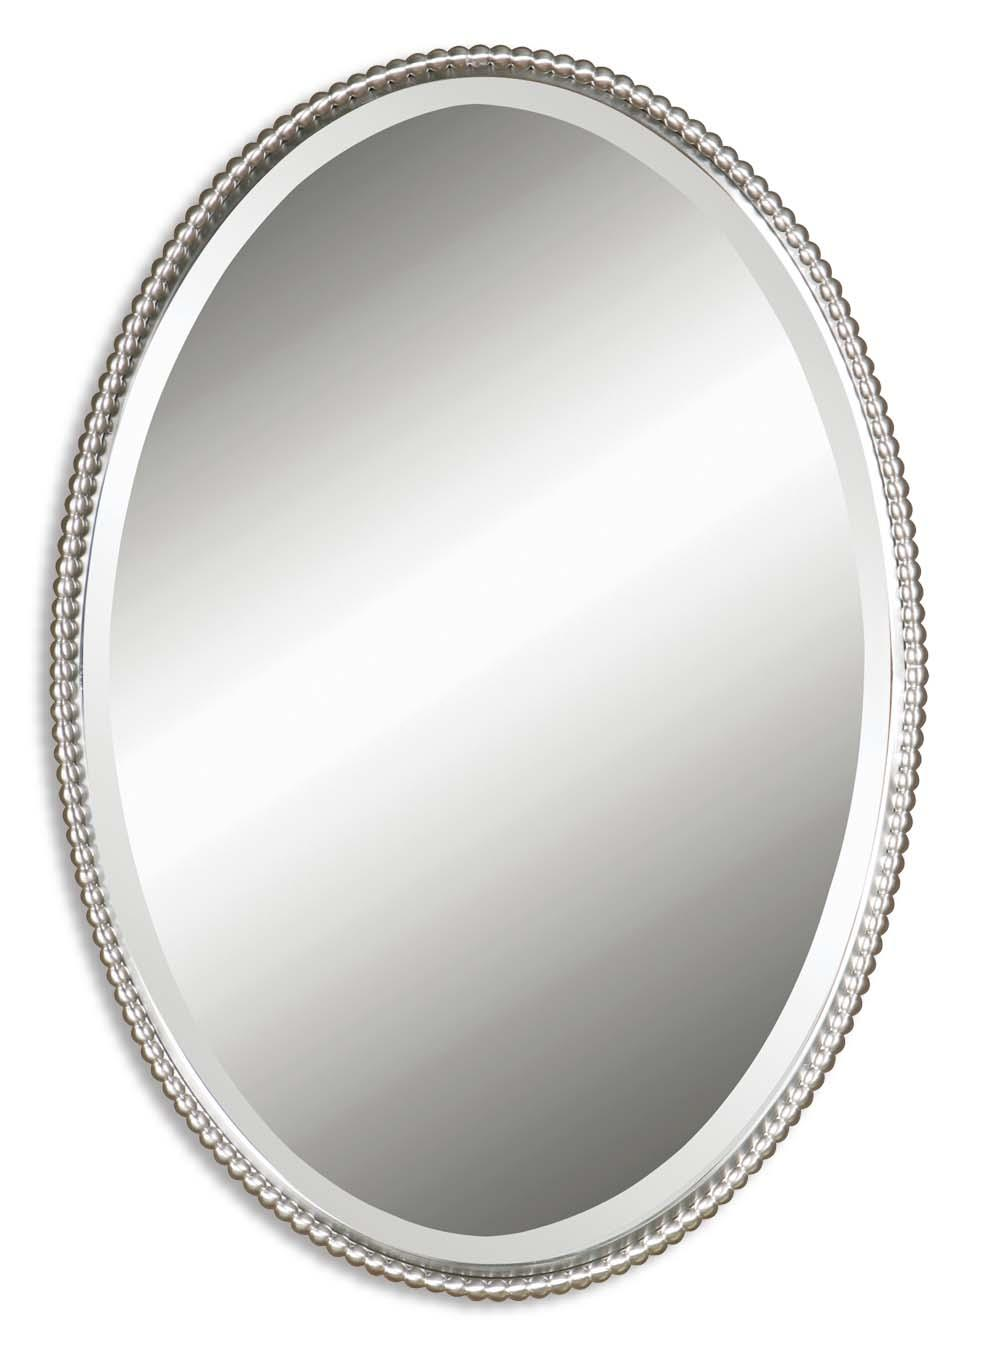 Uttermost Mirrors Sherise Oval Mirror - Item Number: 01102 B